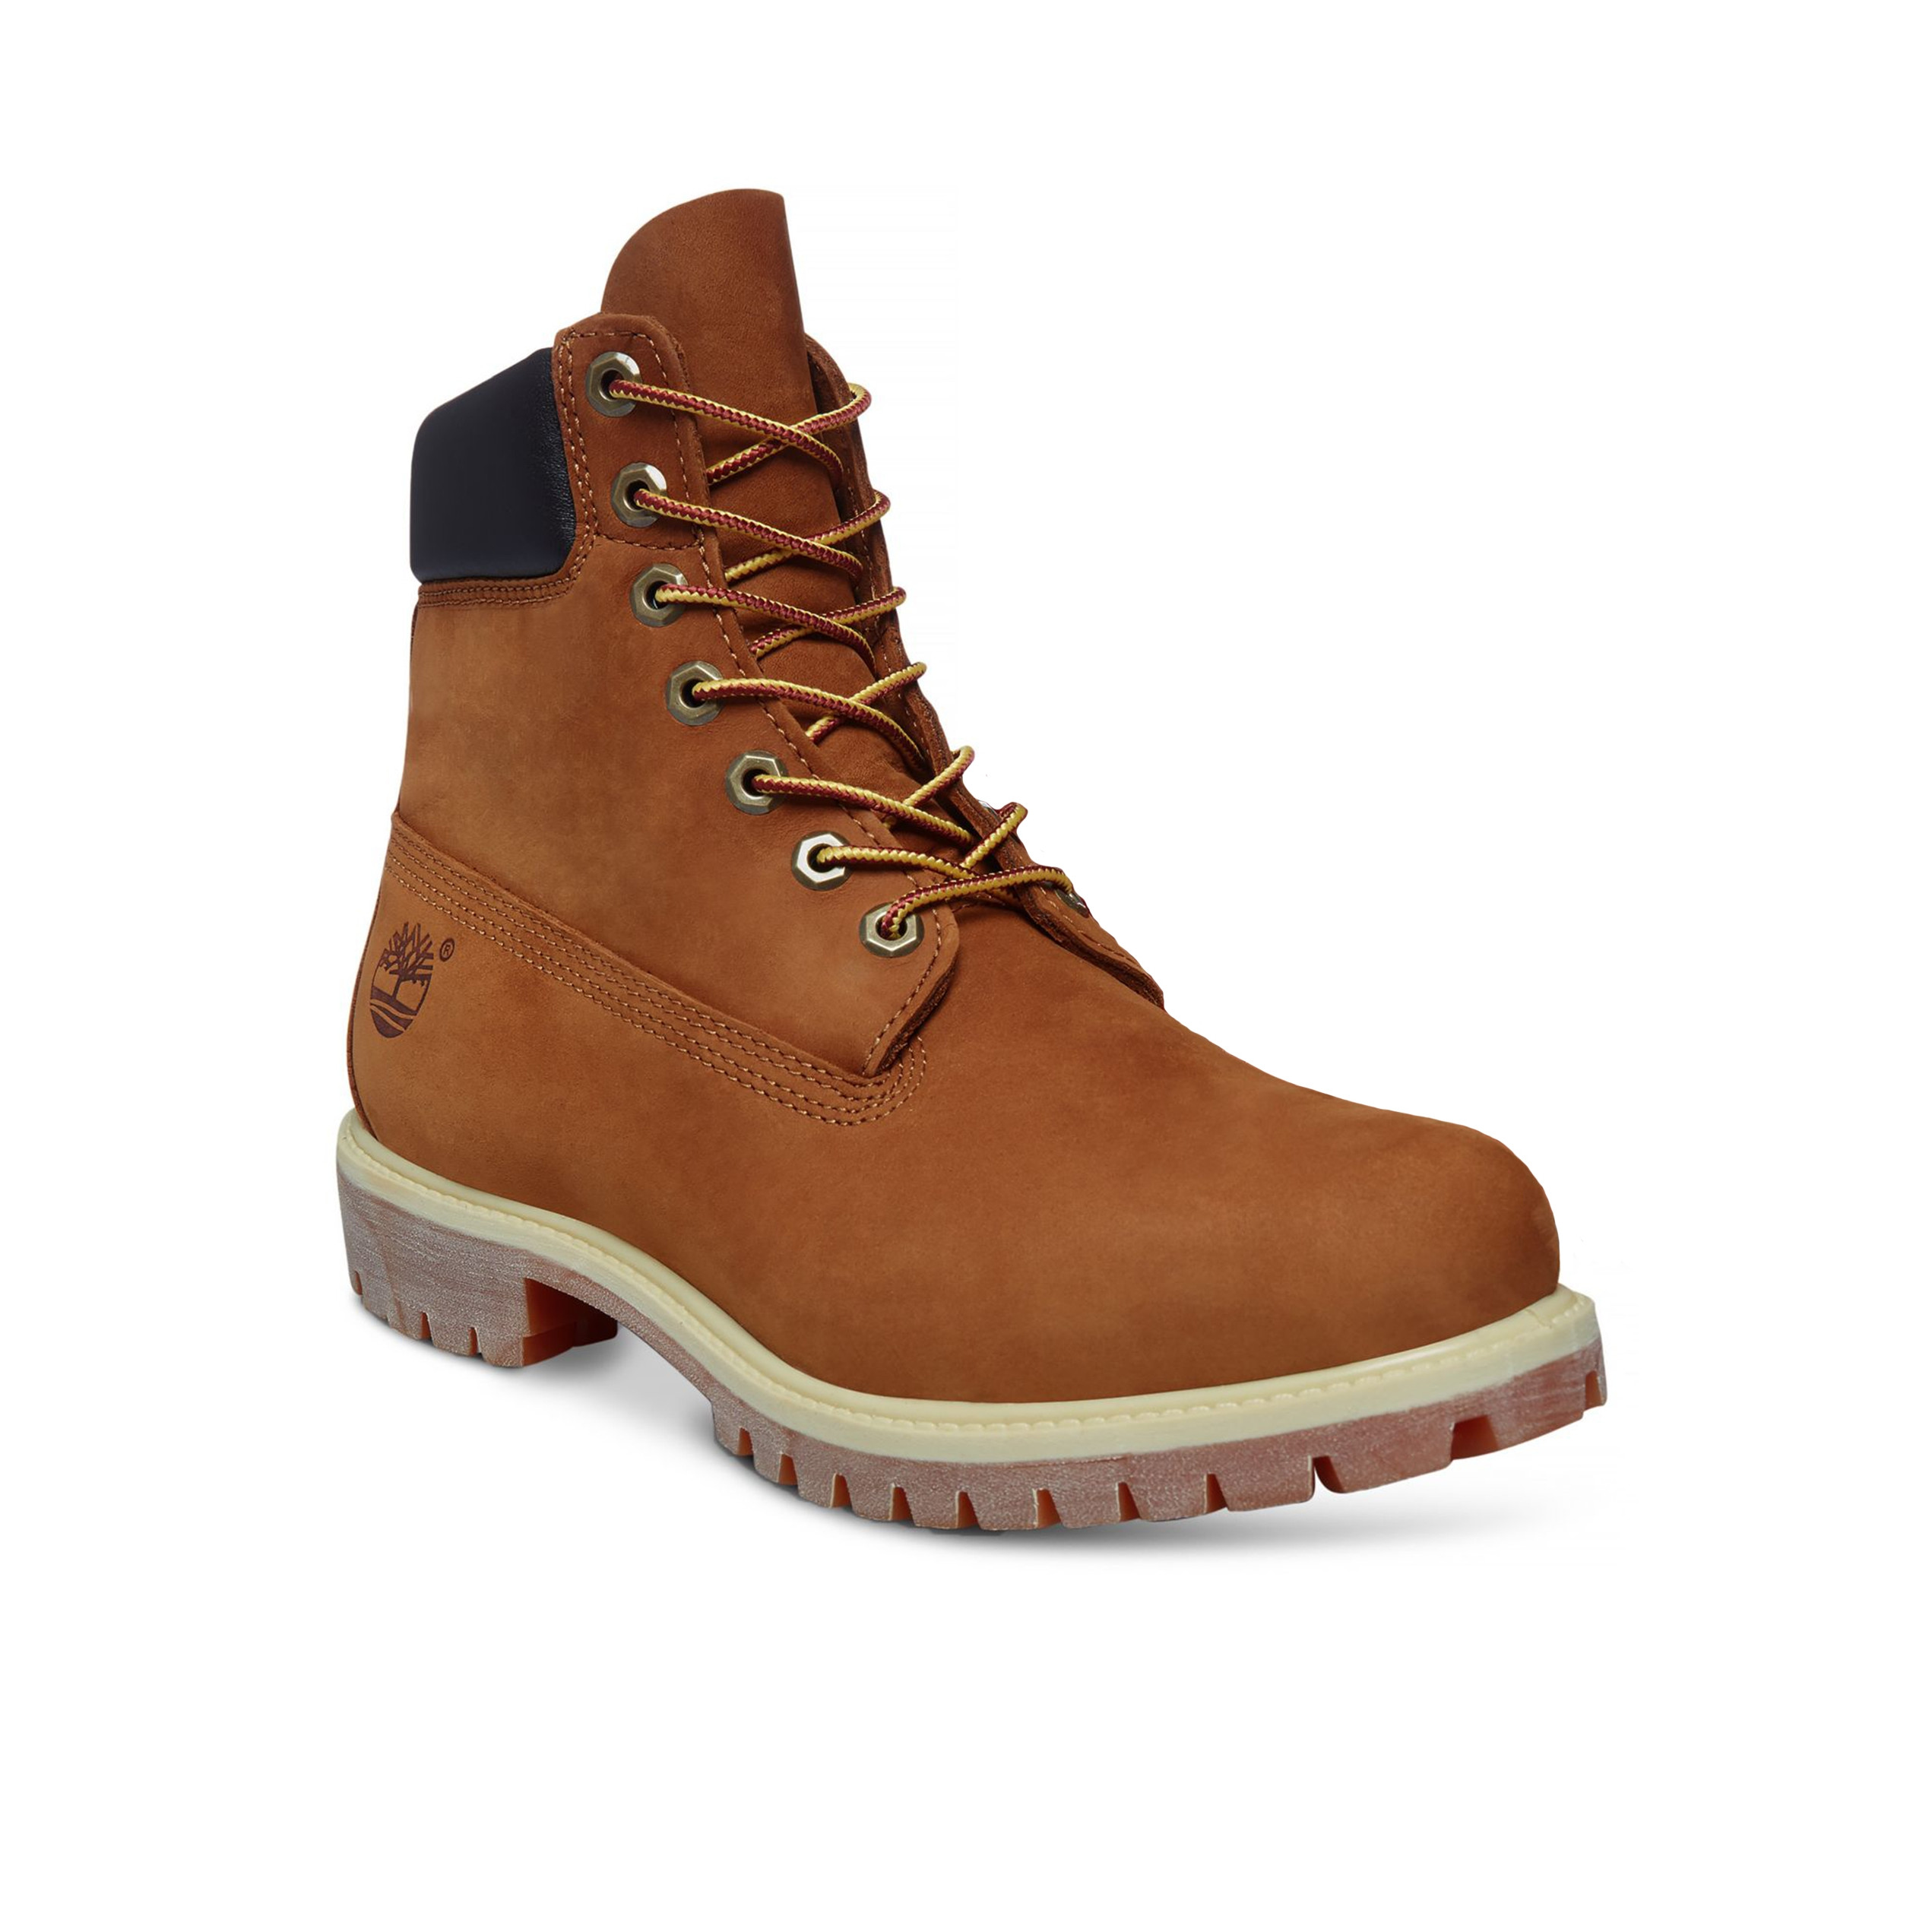 a7bddb481ca Timberland Premium 6 Inch Leather High Boots Rust Orange